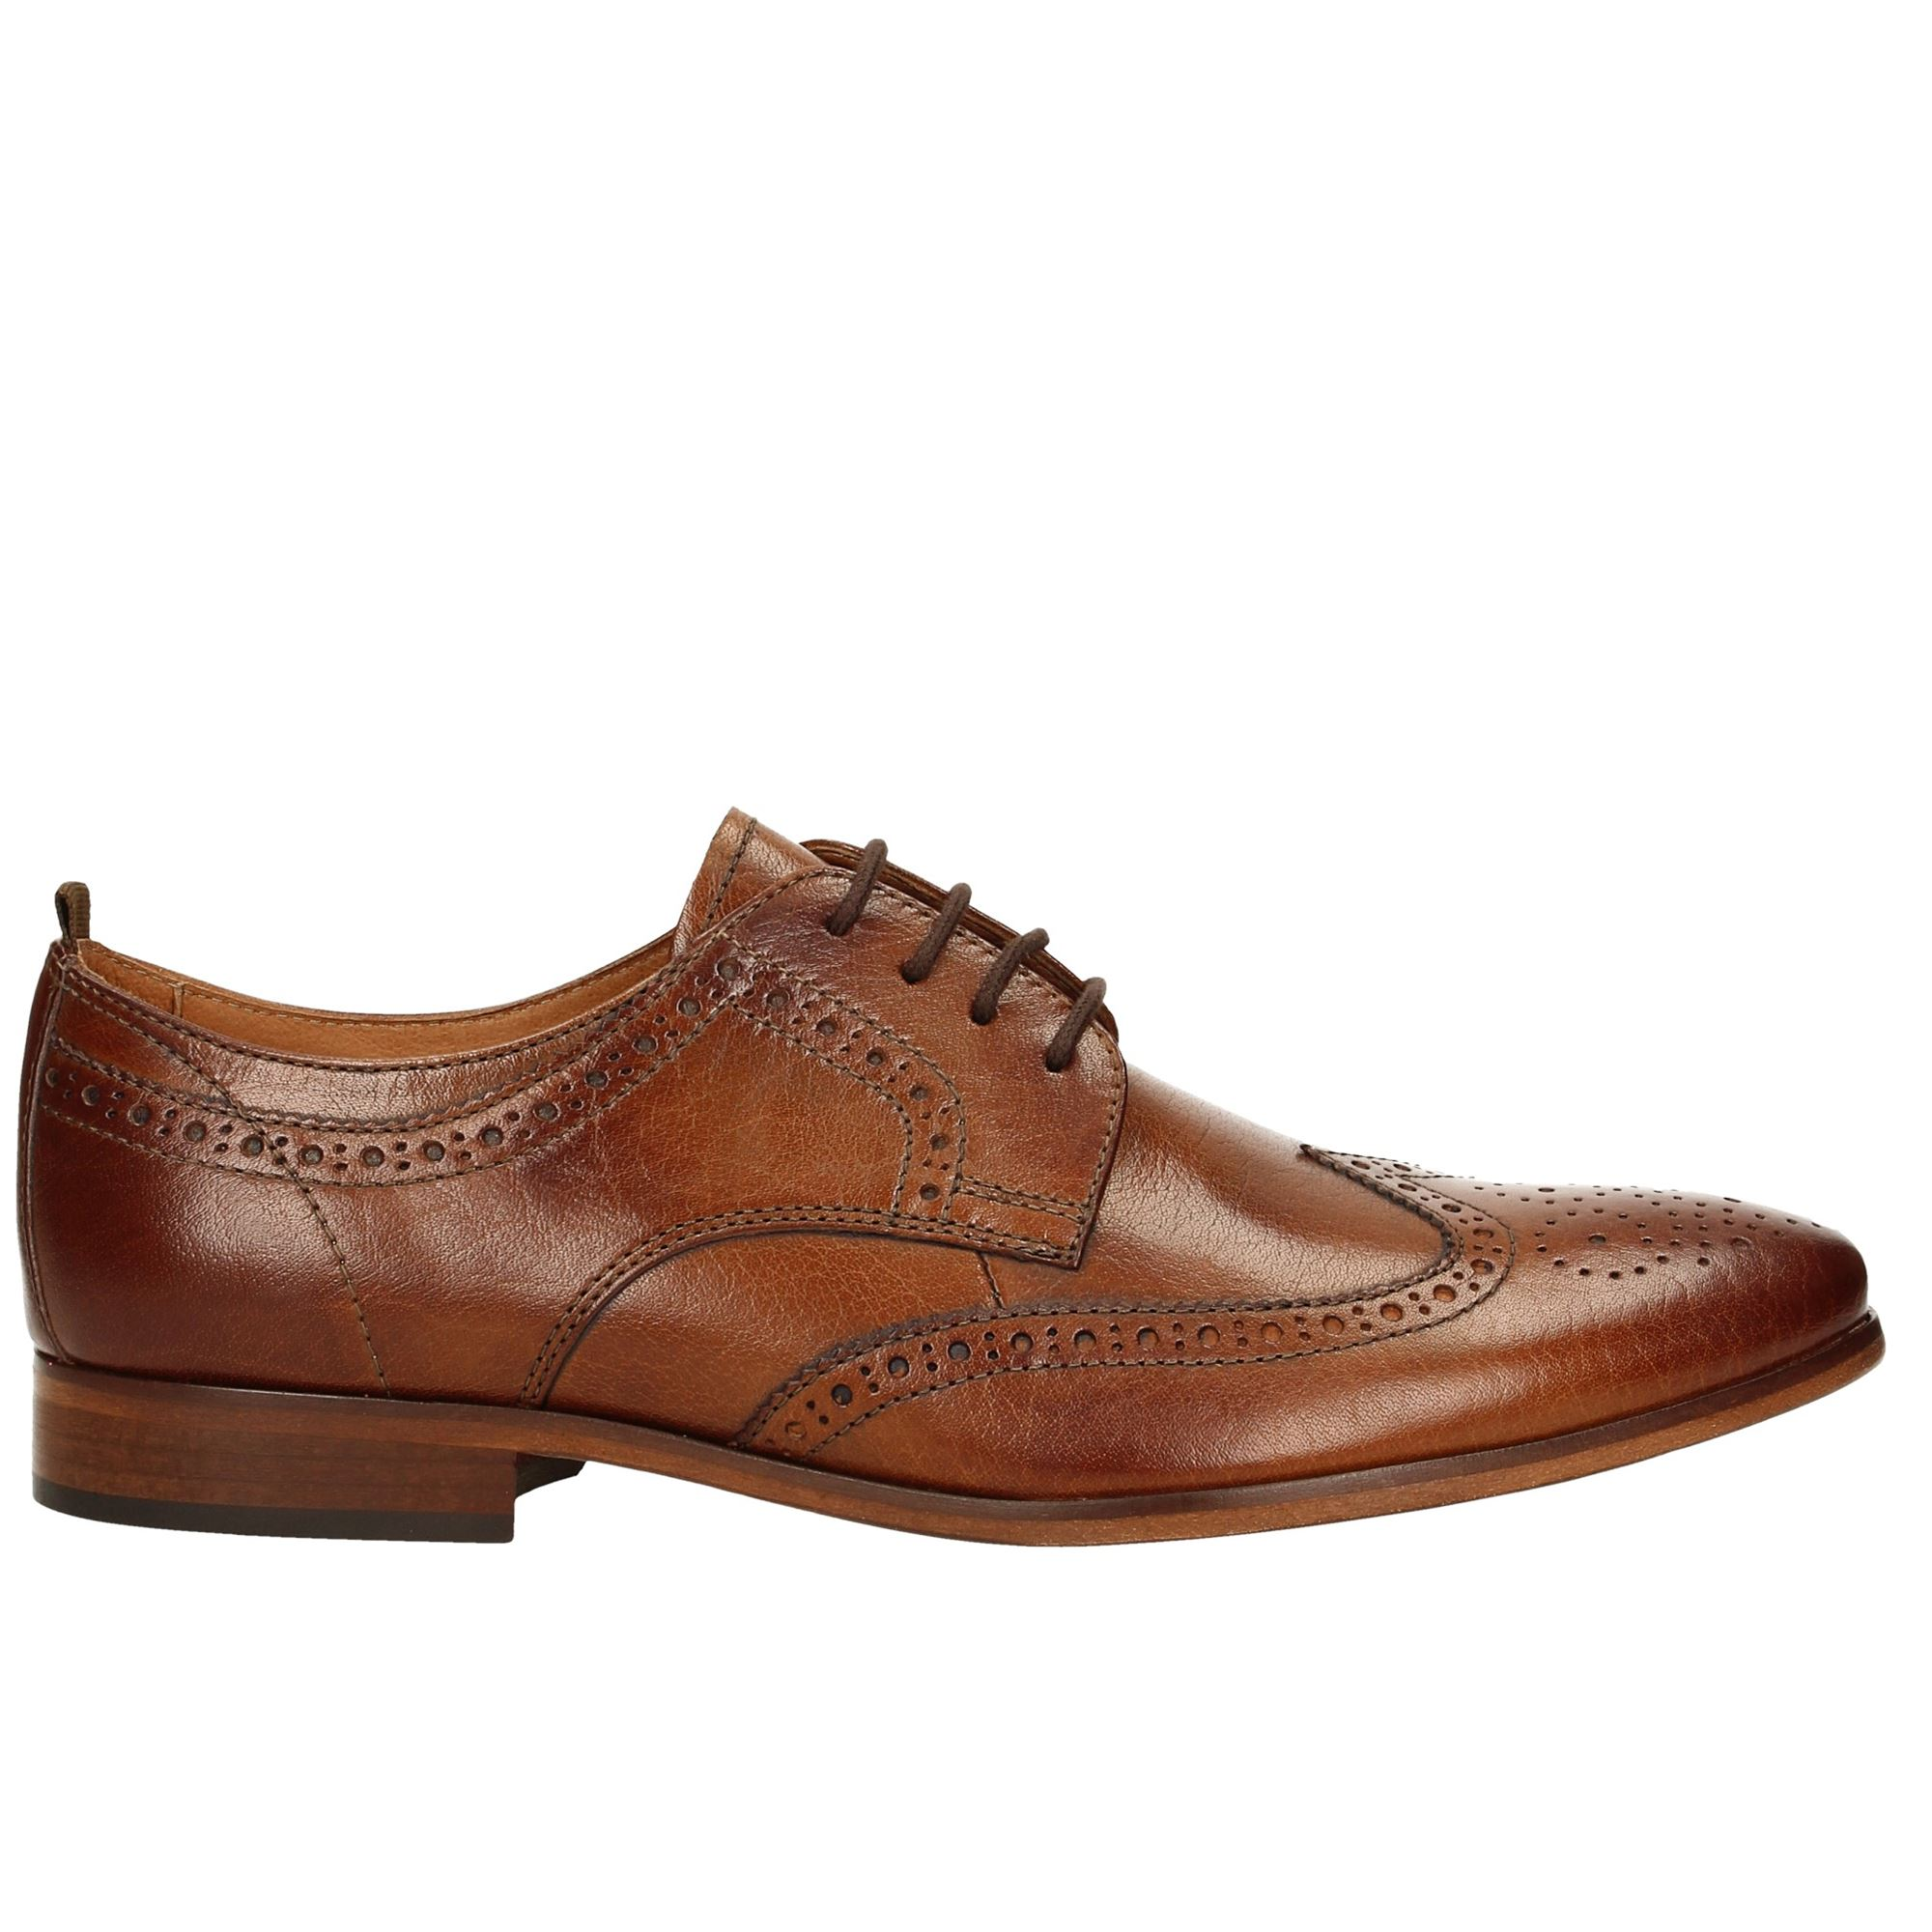 Tata Italia Shoes Man Stringate Brown MS-311R05